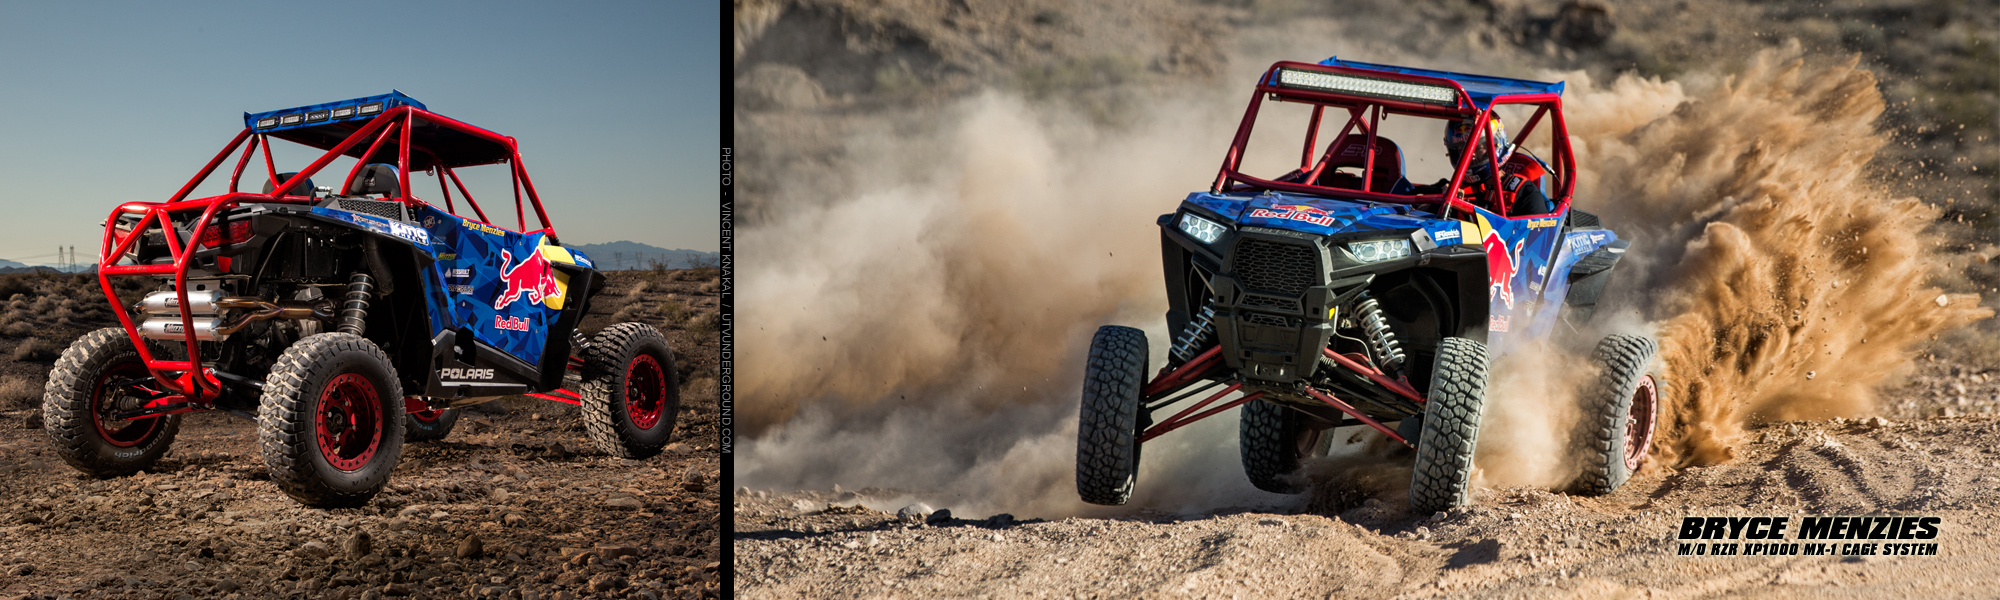 Premium SXS & UTV Parts | RZR Roll Cages, Long Travel